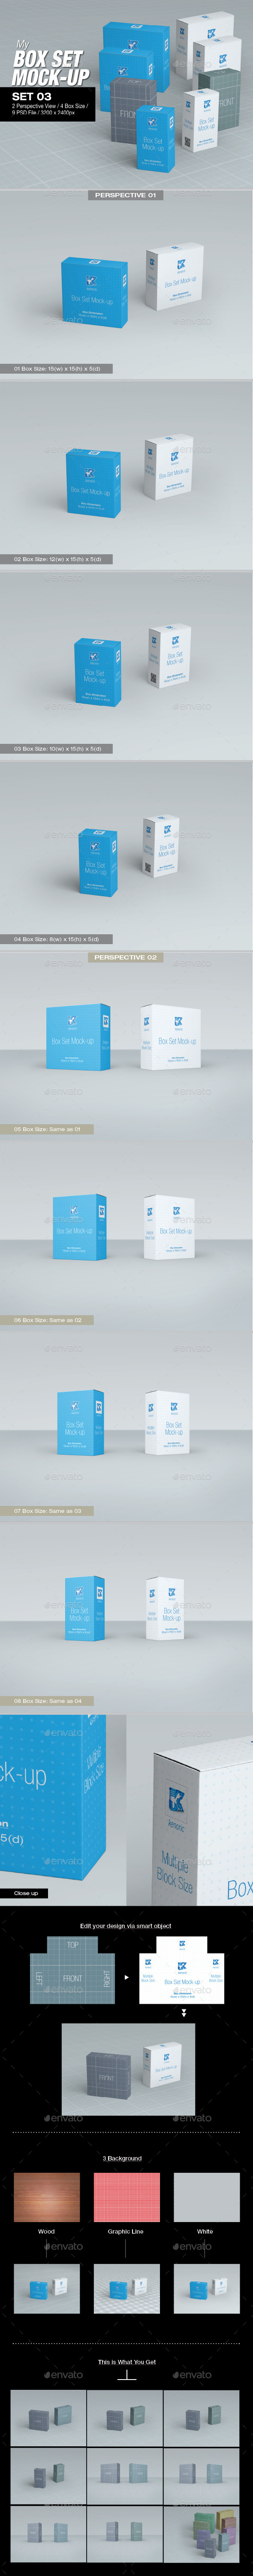 GraphicRiver MyBox Set Mock-Up 03 8791262